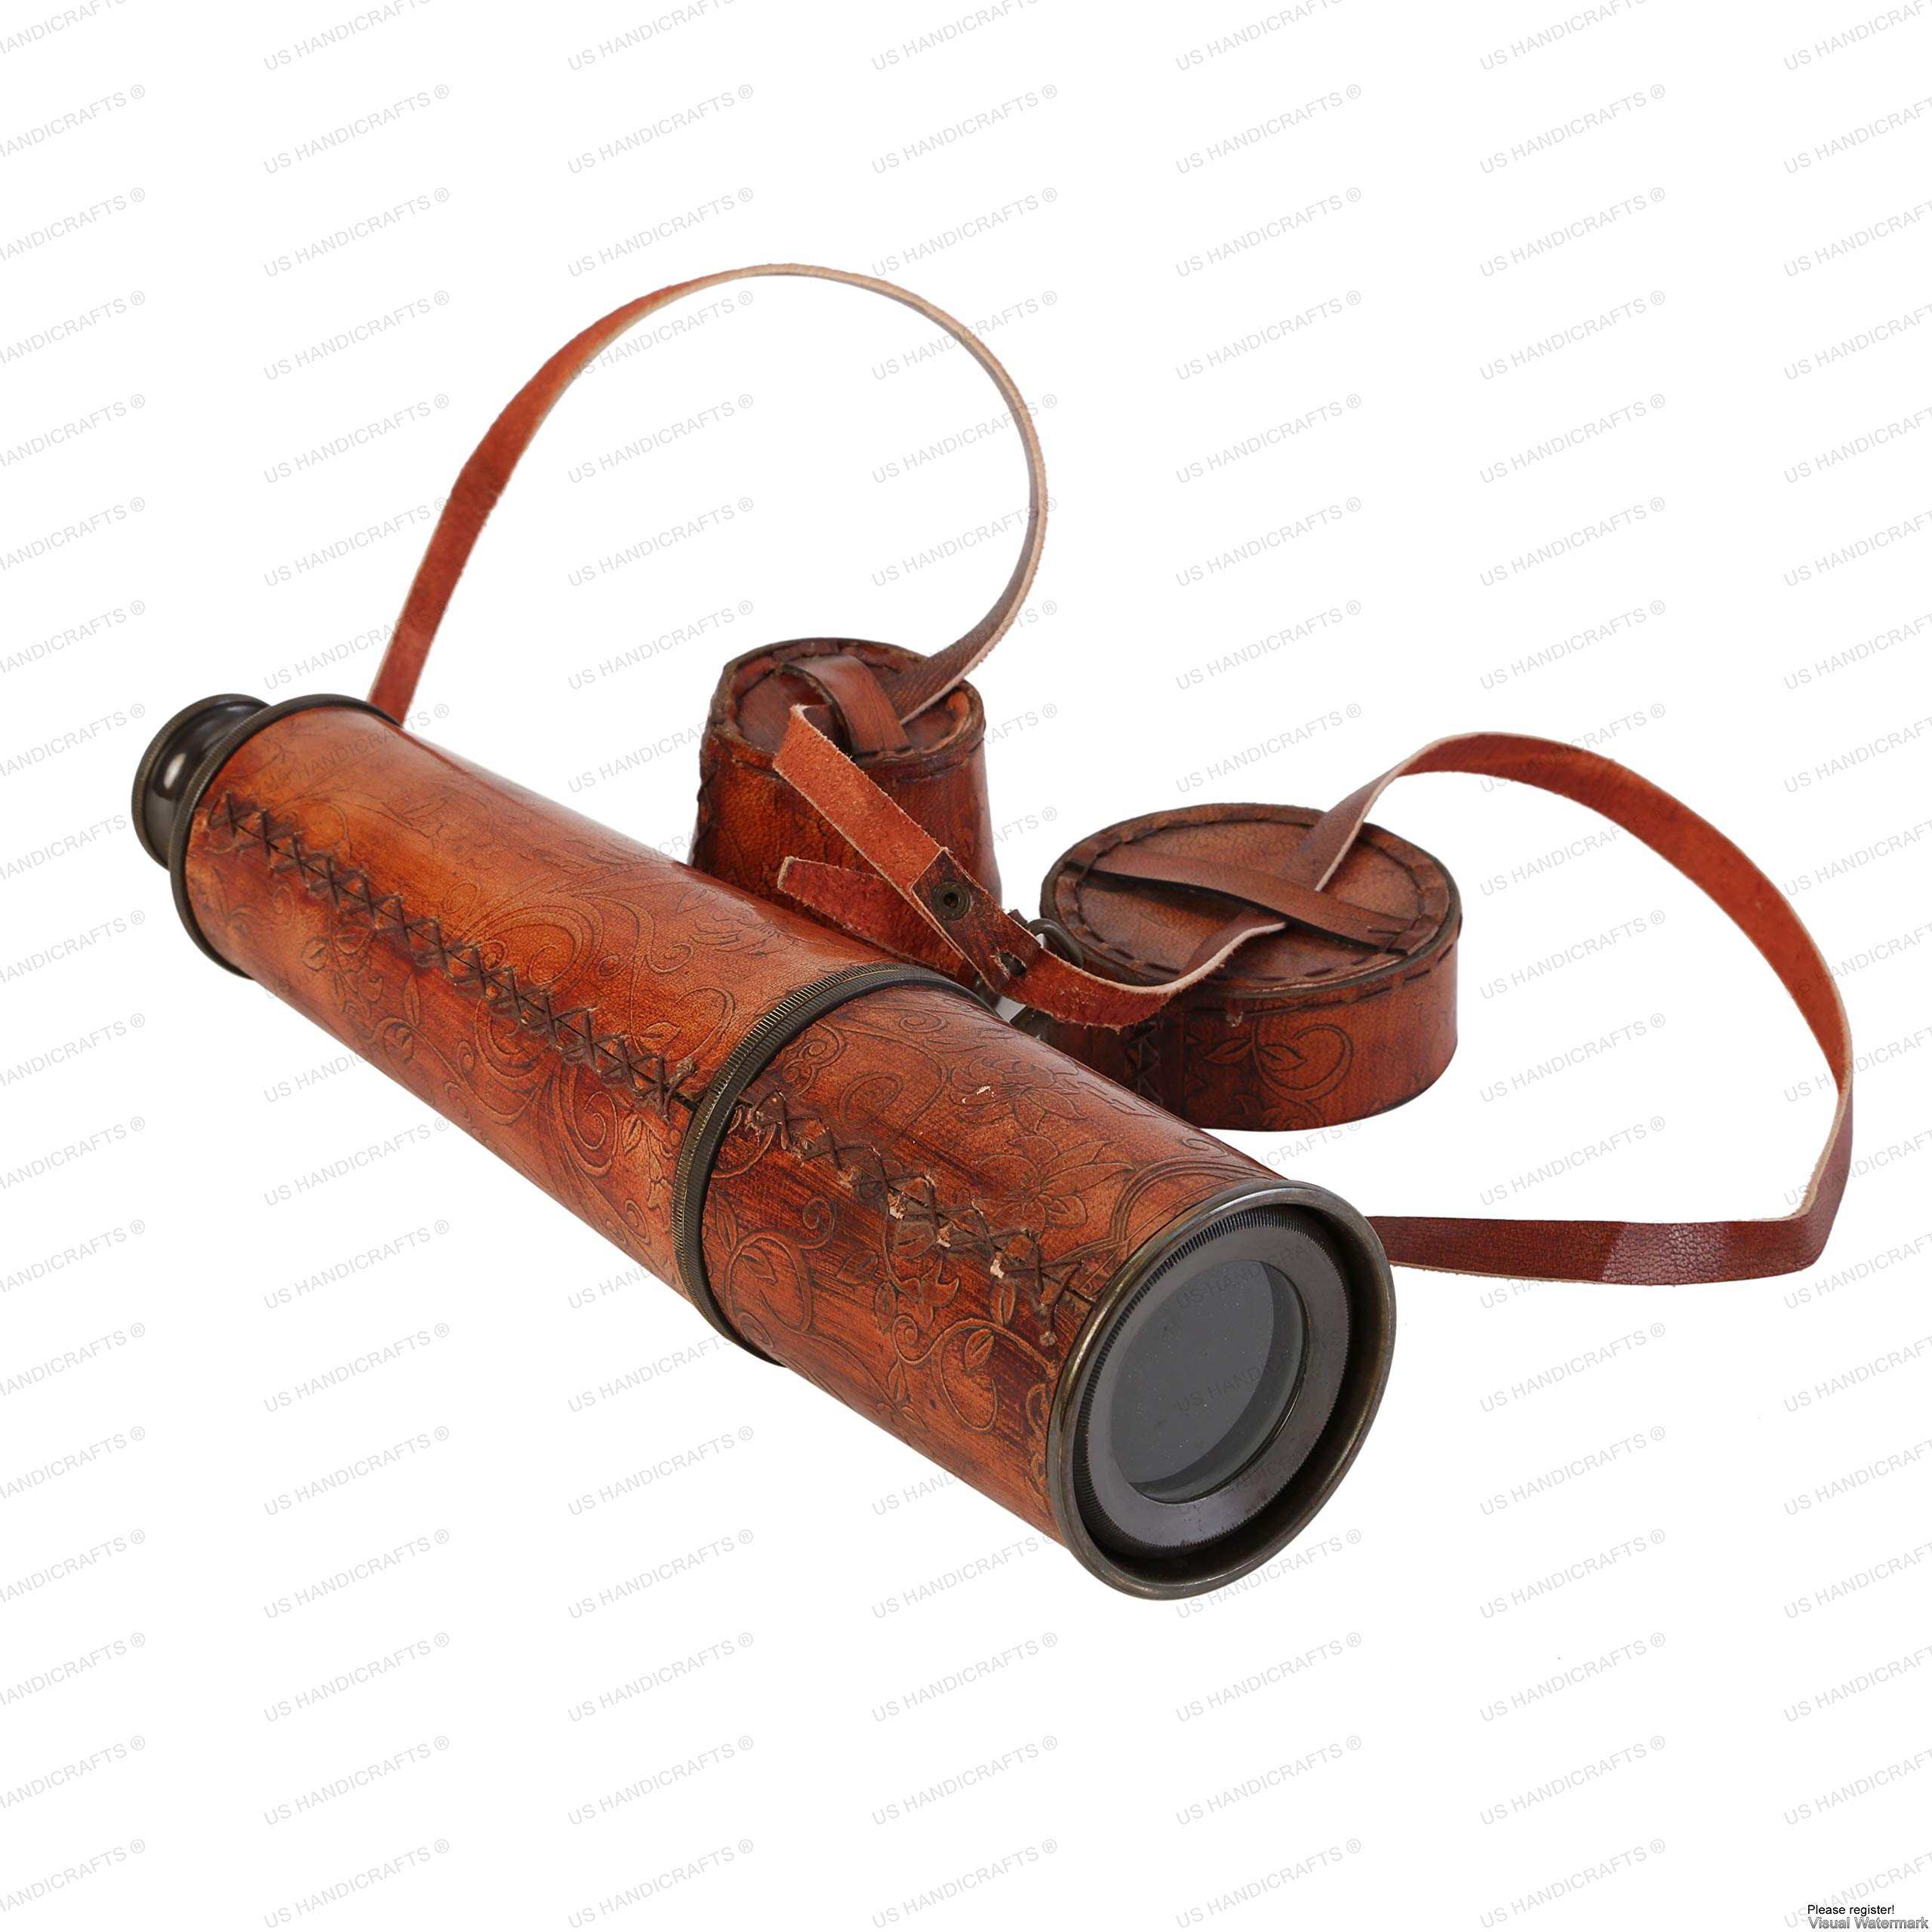 32'' Ship Captain Brass Handmade Telescope with Spy Glass & Leather Case. by US HANDICRAFTS